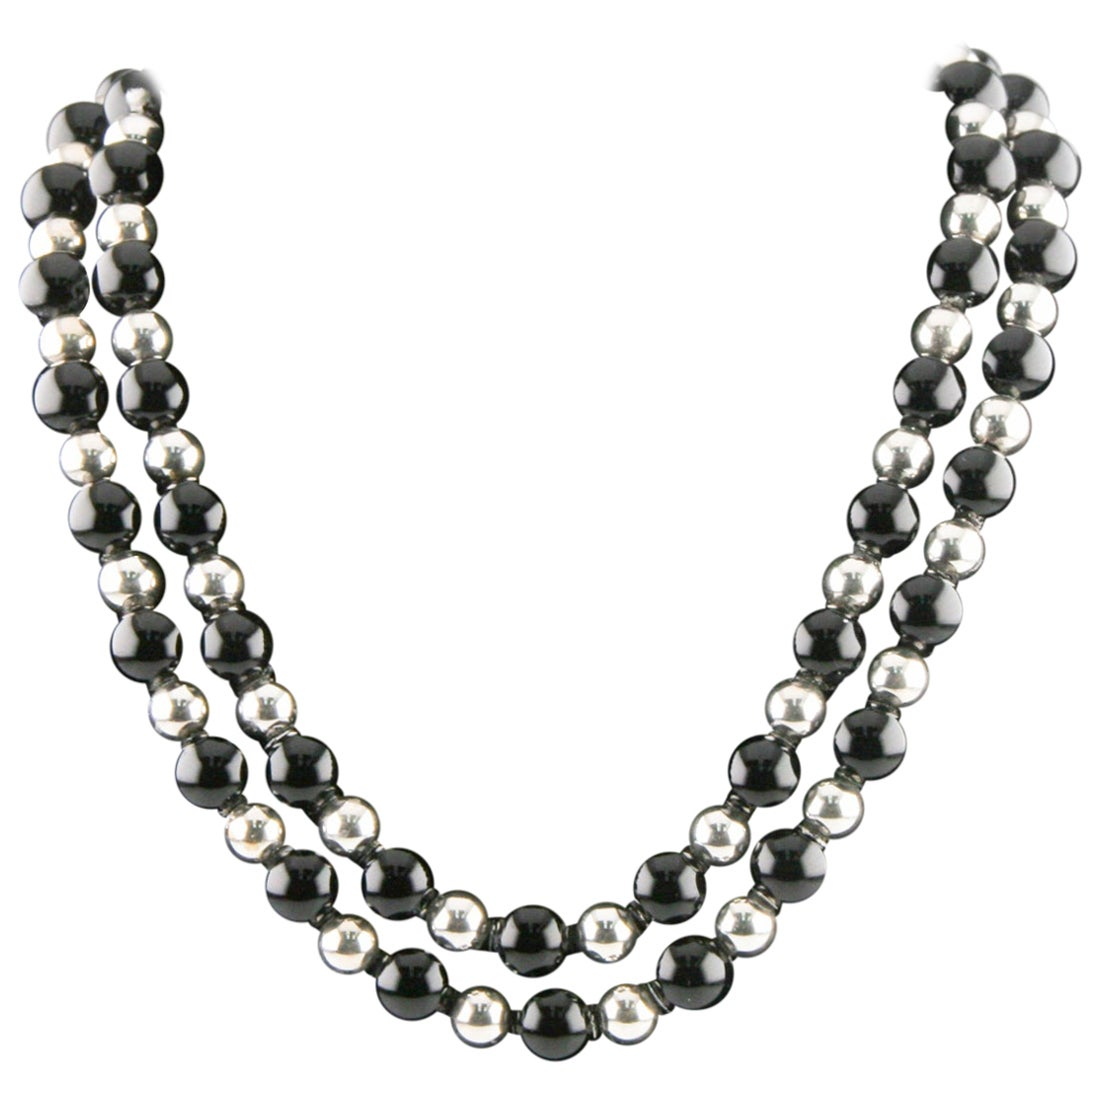 Tiffany & Co. Sterling Silver and Black Onyx Beaded Necklace